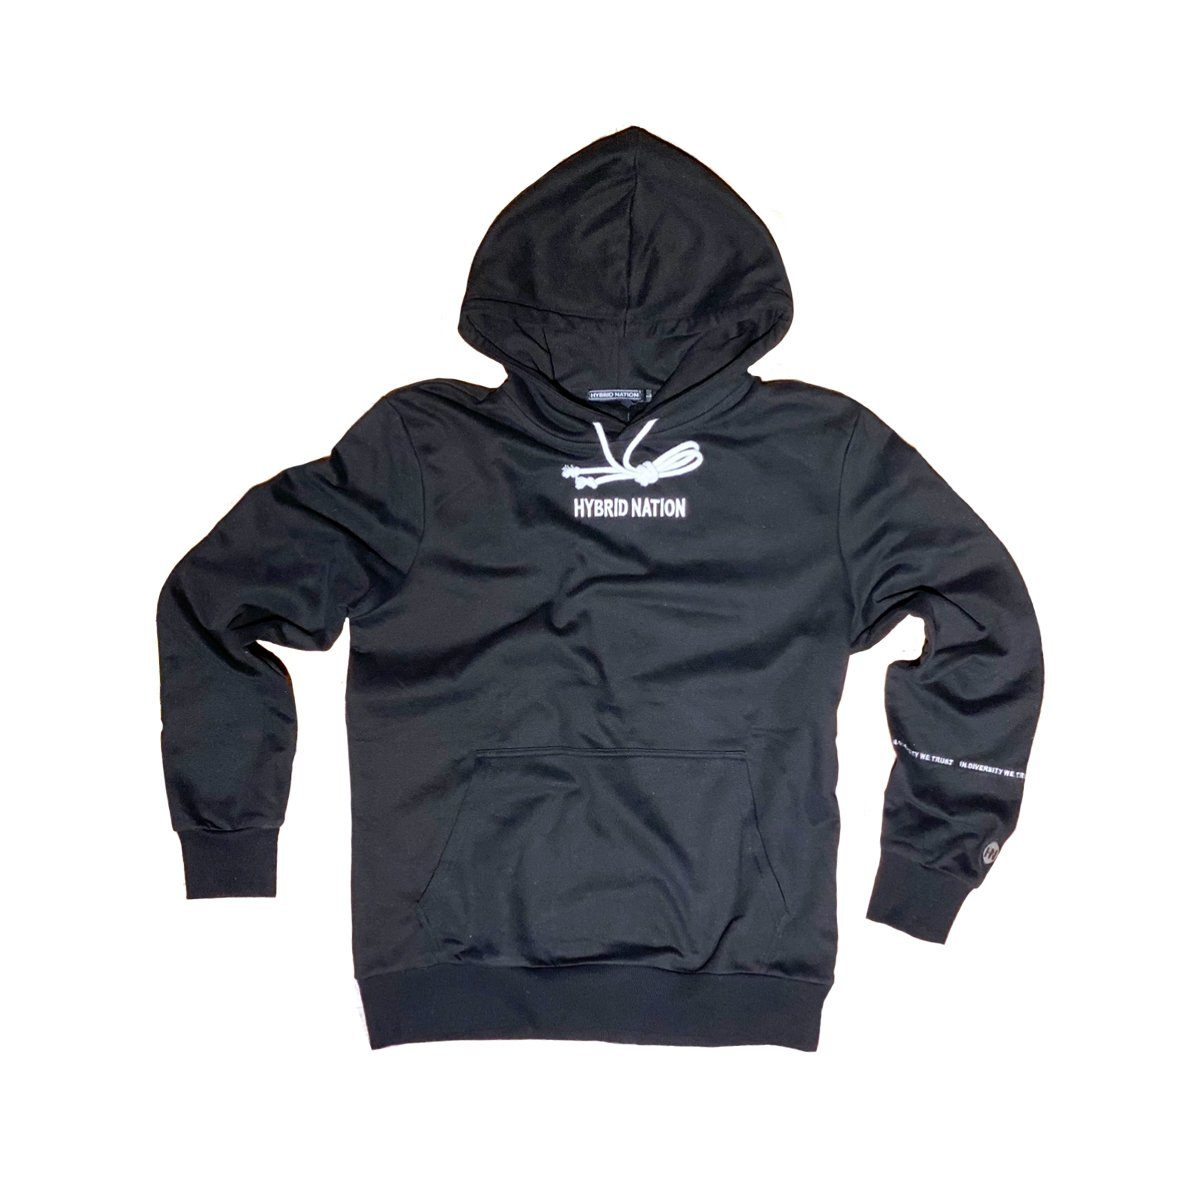 HYBRID NATION BASICS HOODIE (BLACK) Men's Basics Sweatshirt Hybrid Nation (China) XS